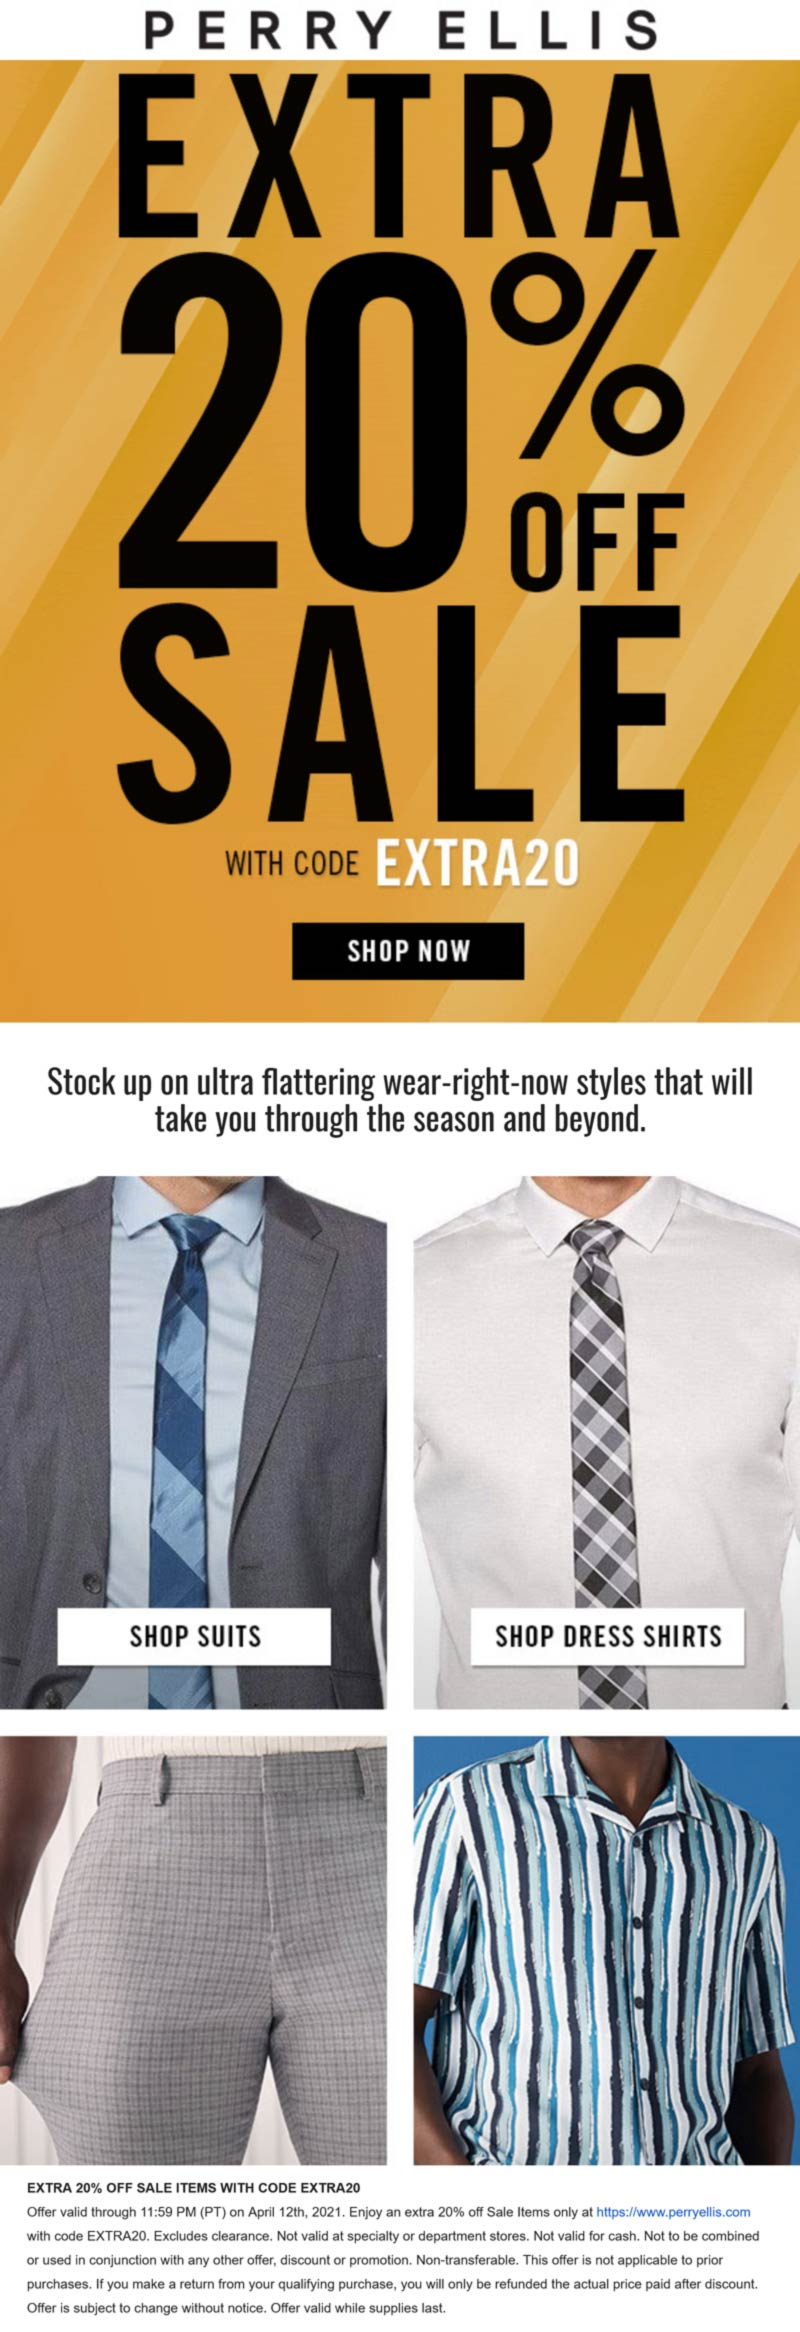 Perry Ellis coupons & promo code for [May 2021]